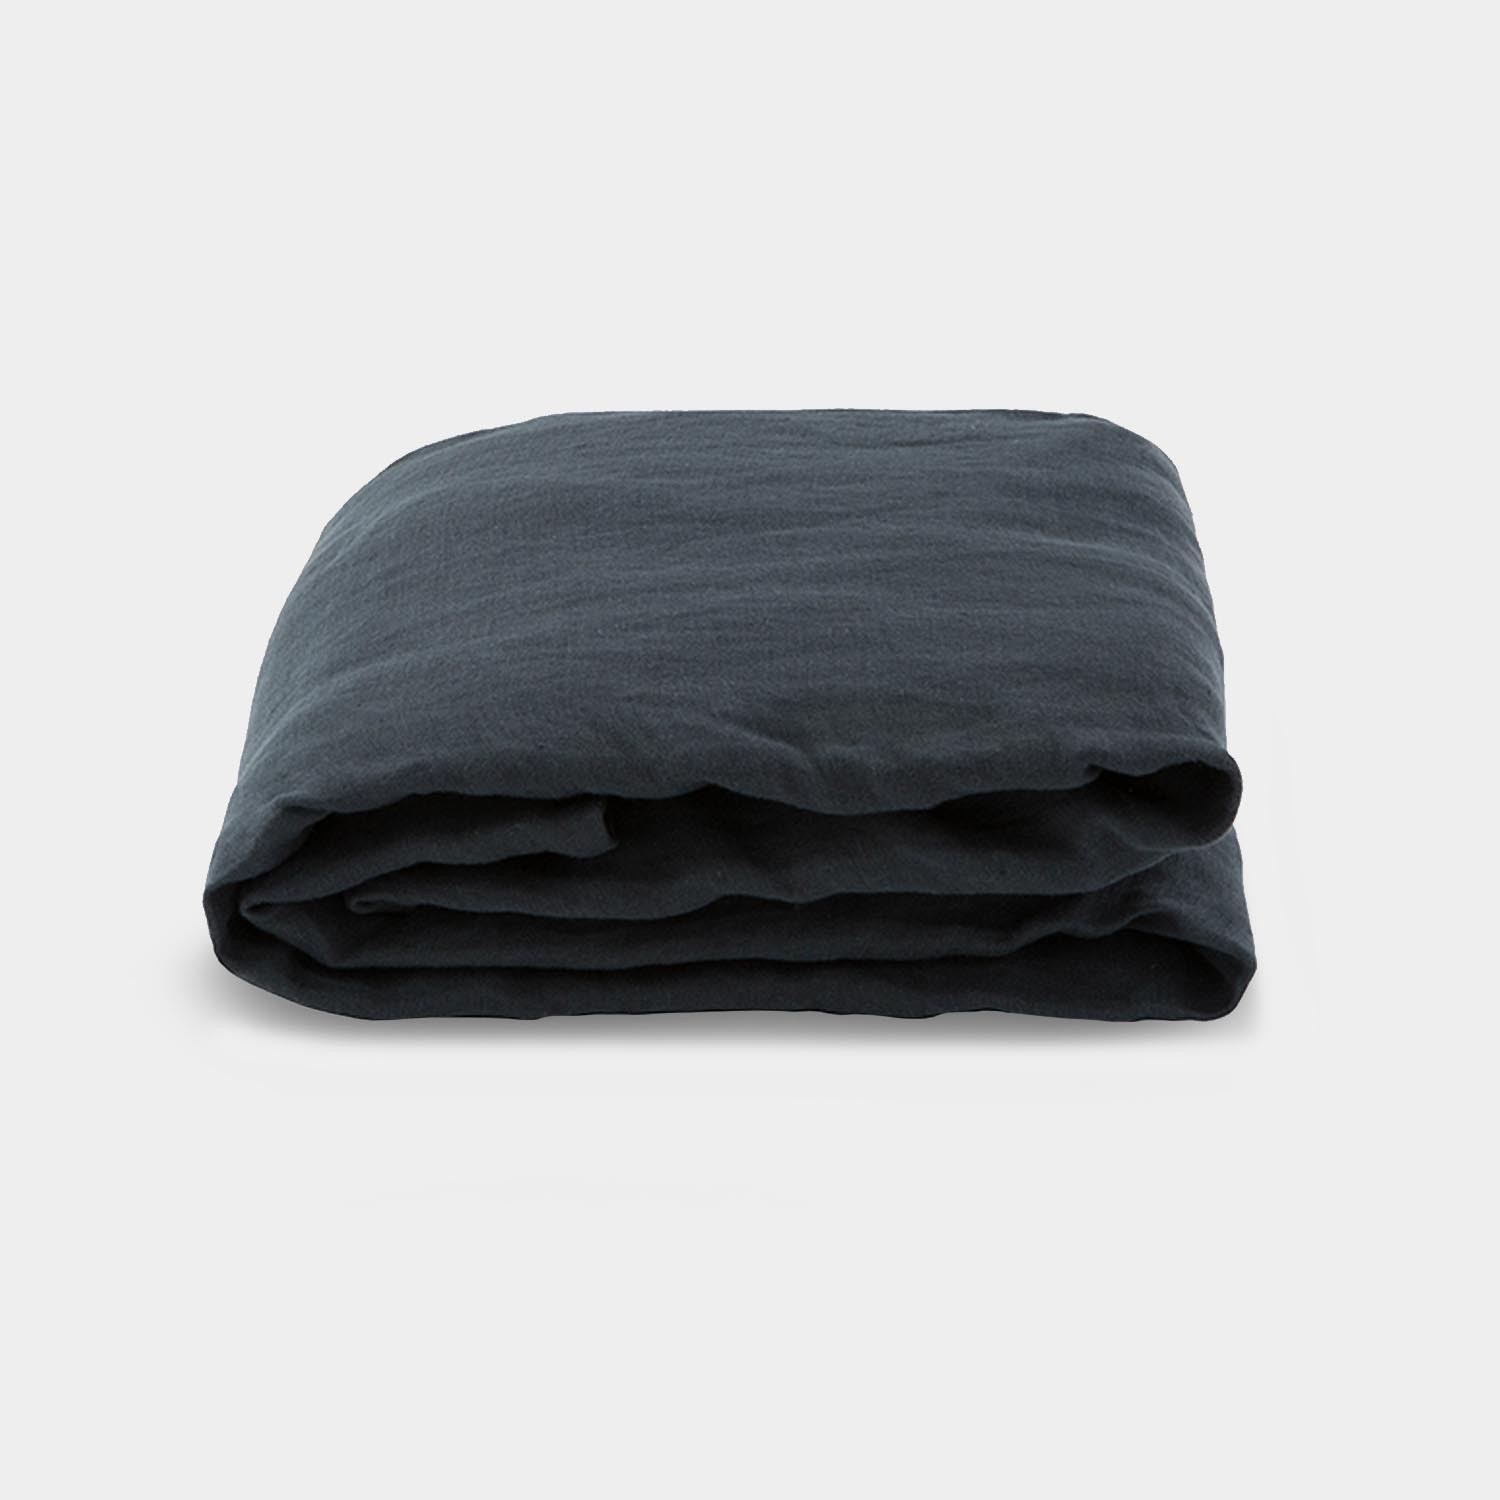 Linen Satin Fitted Sheet, Queen Size, Smoky Black